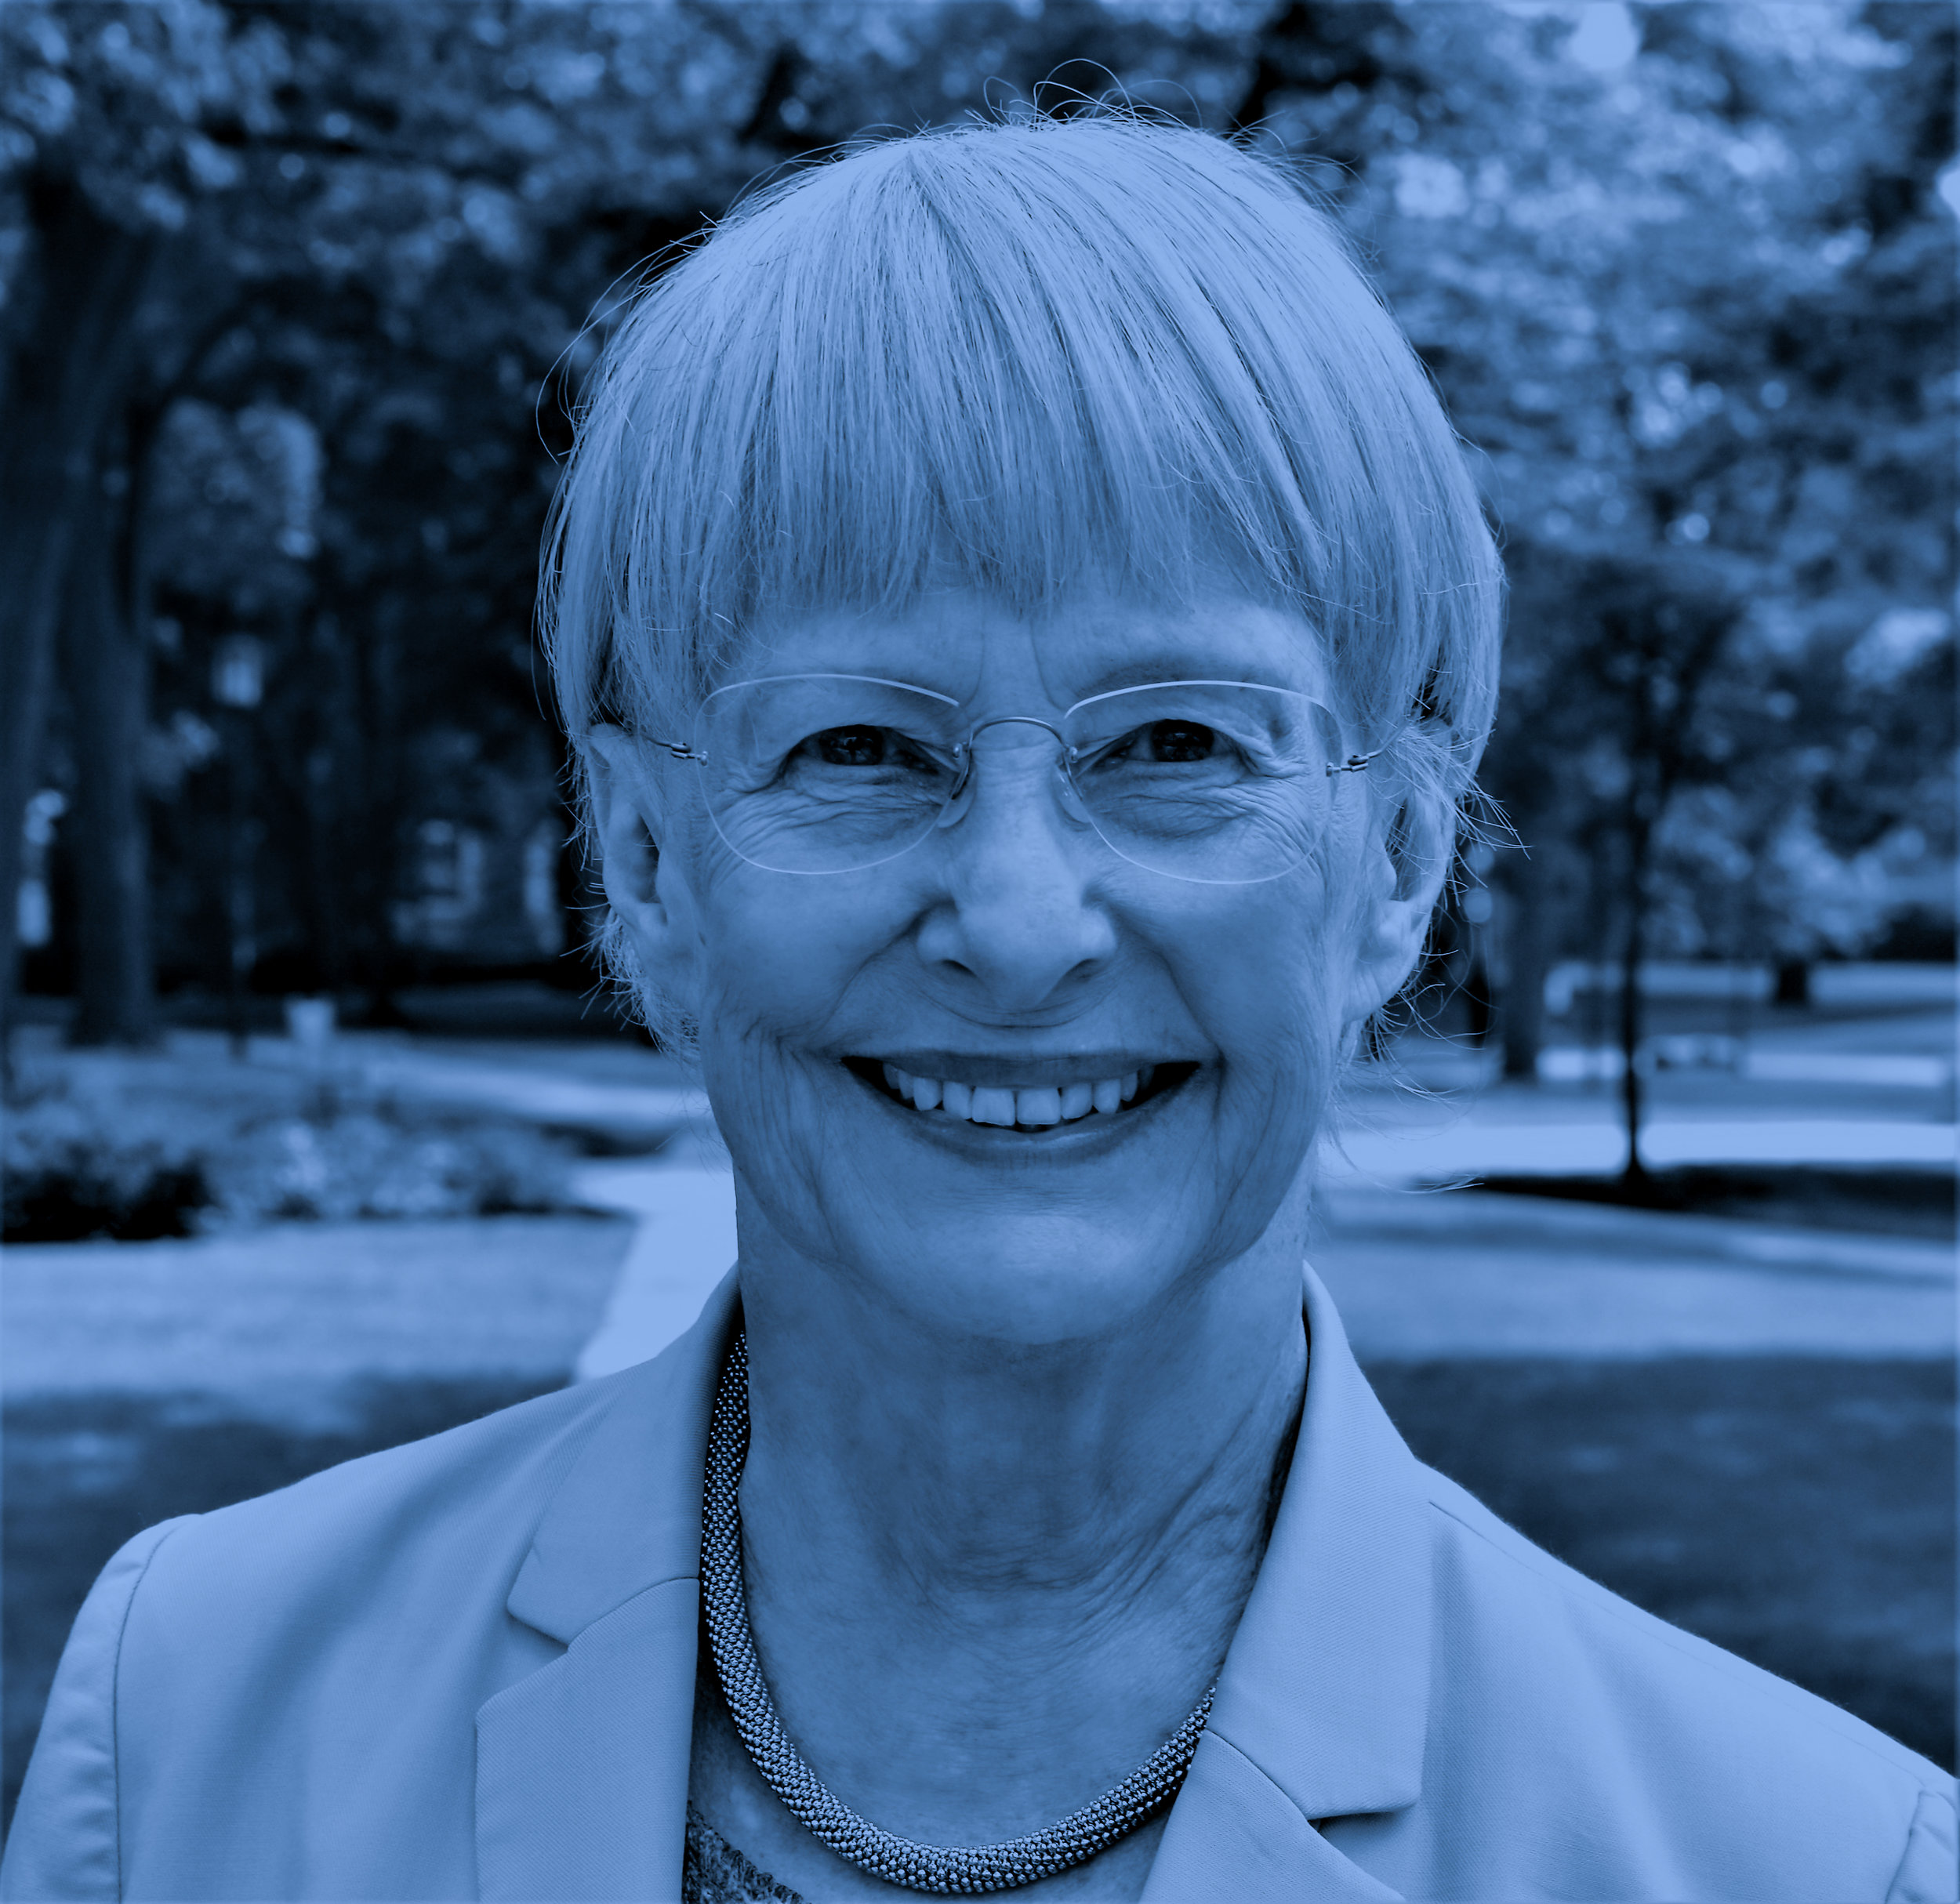 Alice Eagly |  Professor, Psychology, and of Management and Organizations, Northwestern University